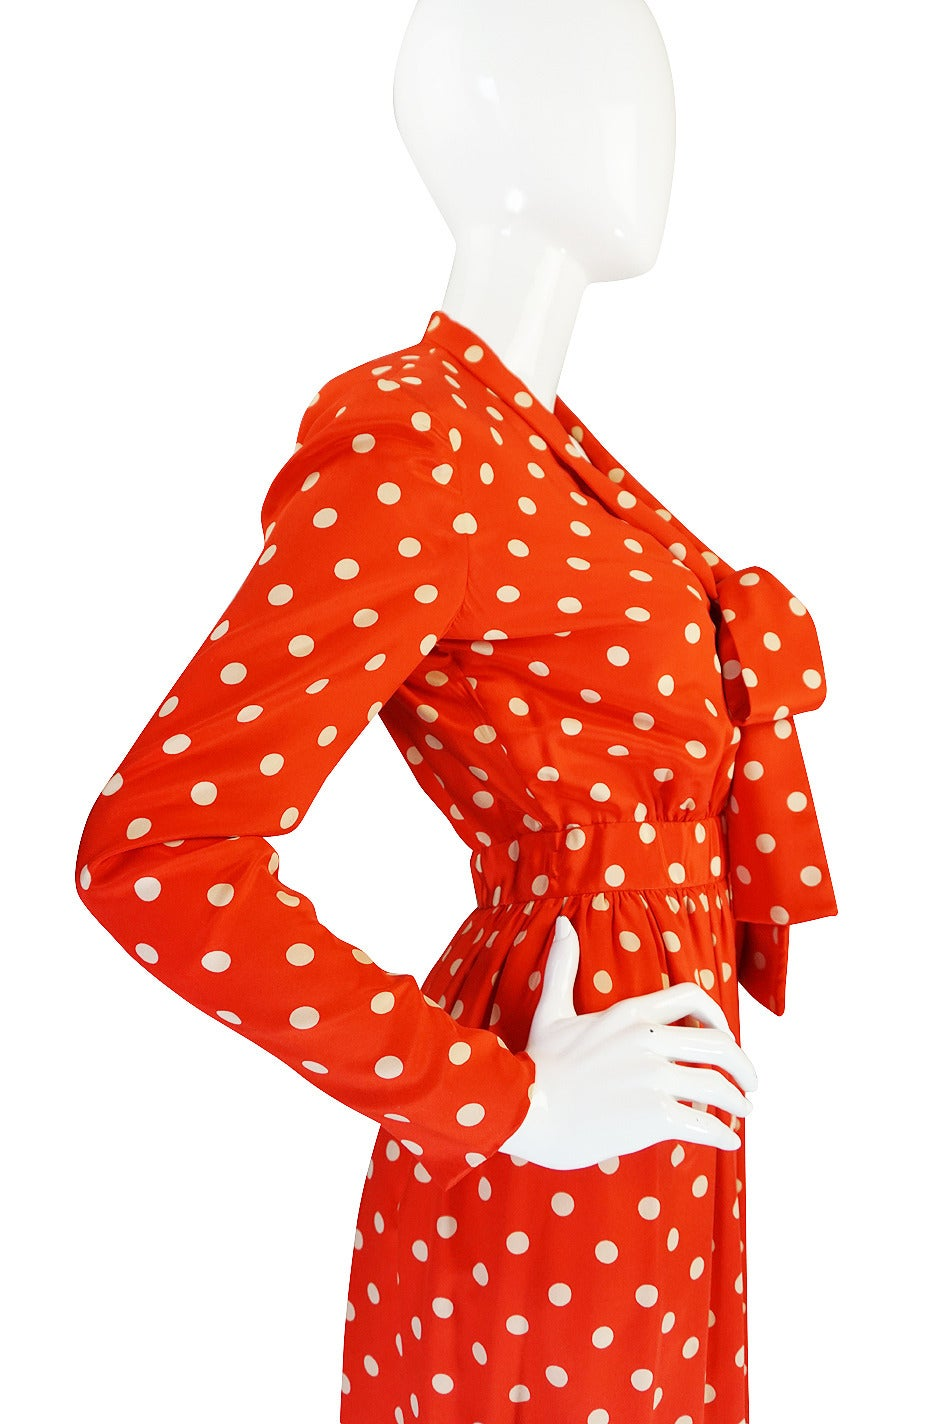 c1972-76 Norell Tassell Dotted Red Maxi Dress In Excellent Condition For Sale In Toronto, CA